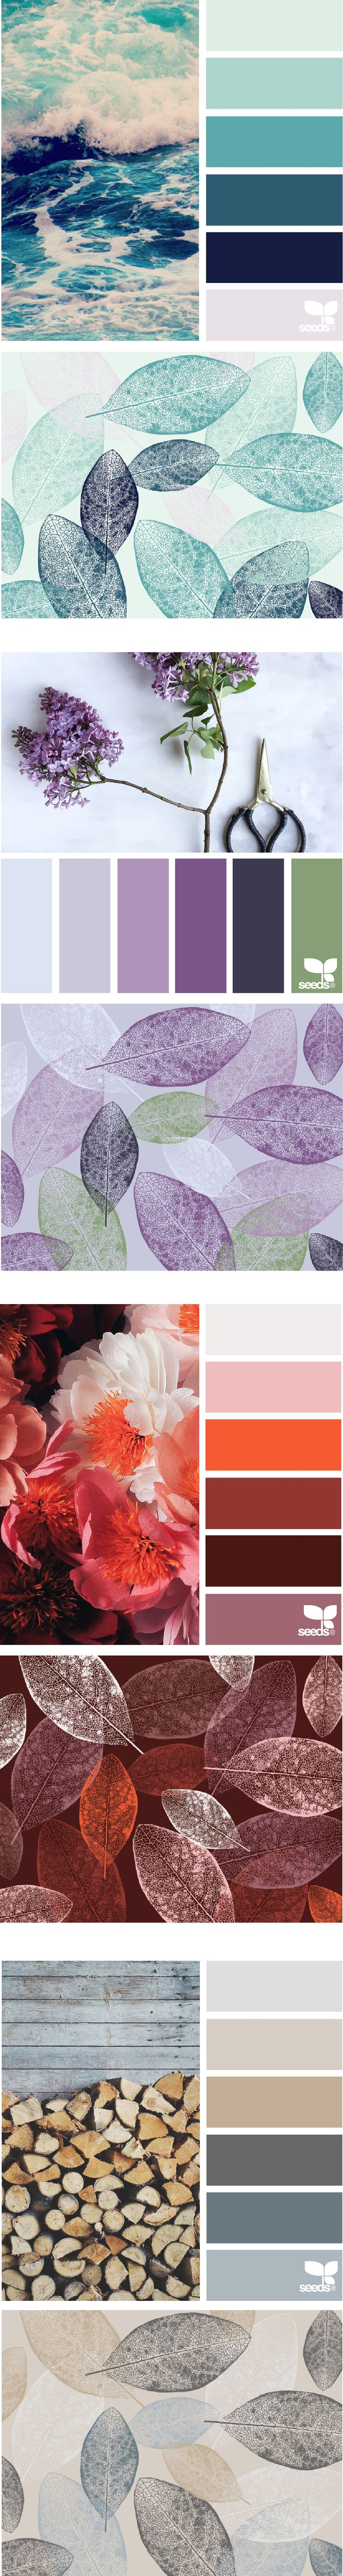 Announcing my new color class! Enter the colorful world of Design Seeds, and learn my process for using color inspired by the seasons in Inspired Color: Using Color Successfully in your Work! >>>>>>>>>> Join here: http://skl.sh/designseeds >>>>>>>>>> p